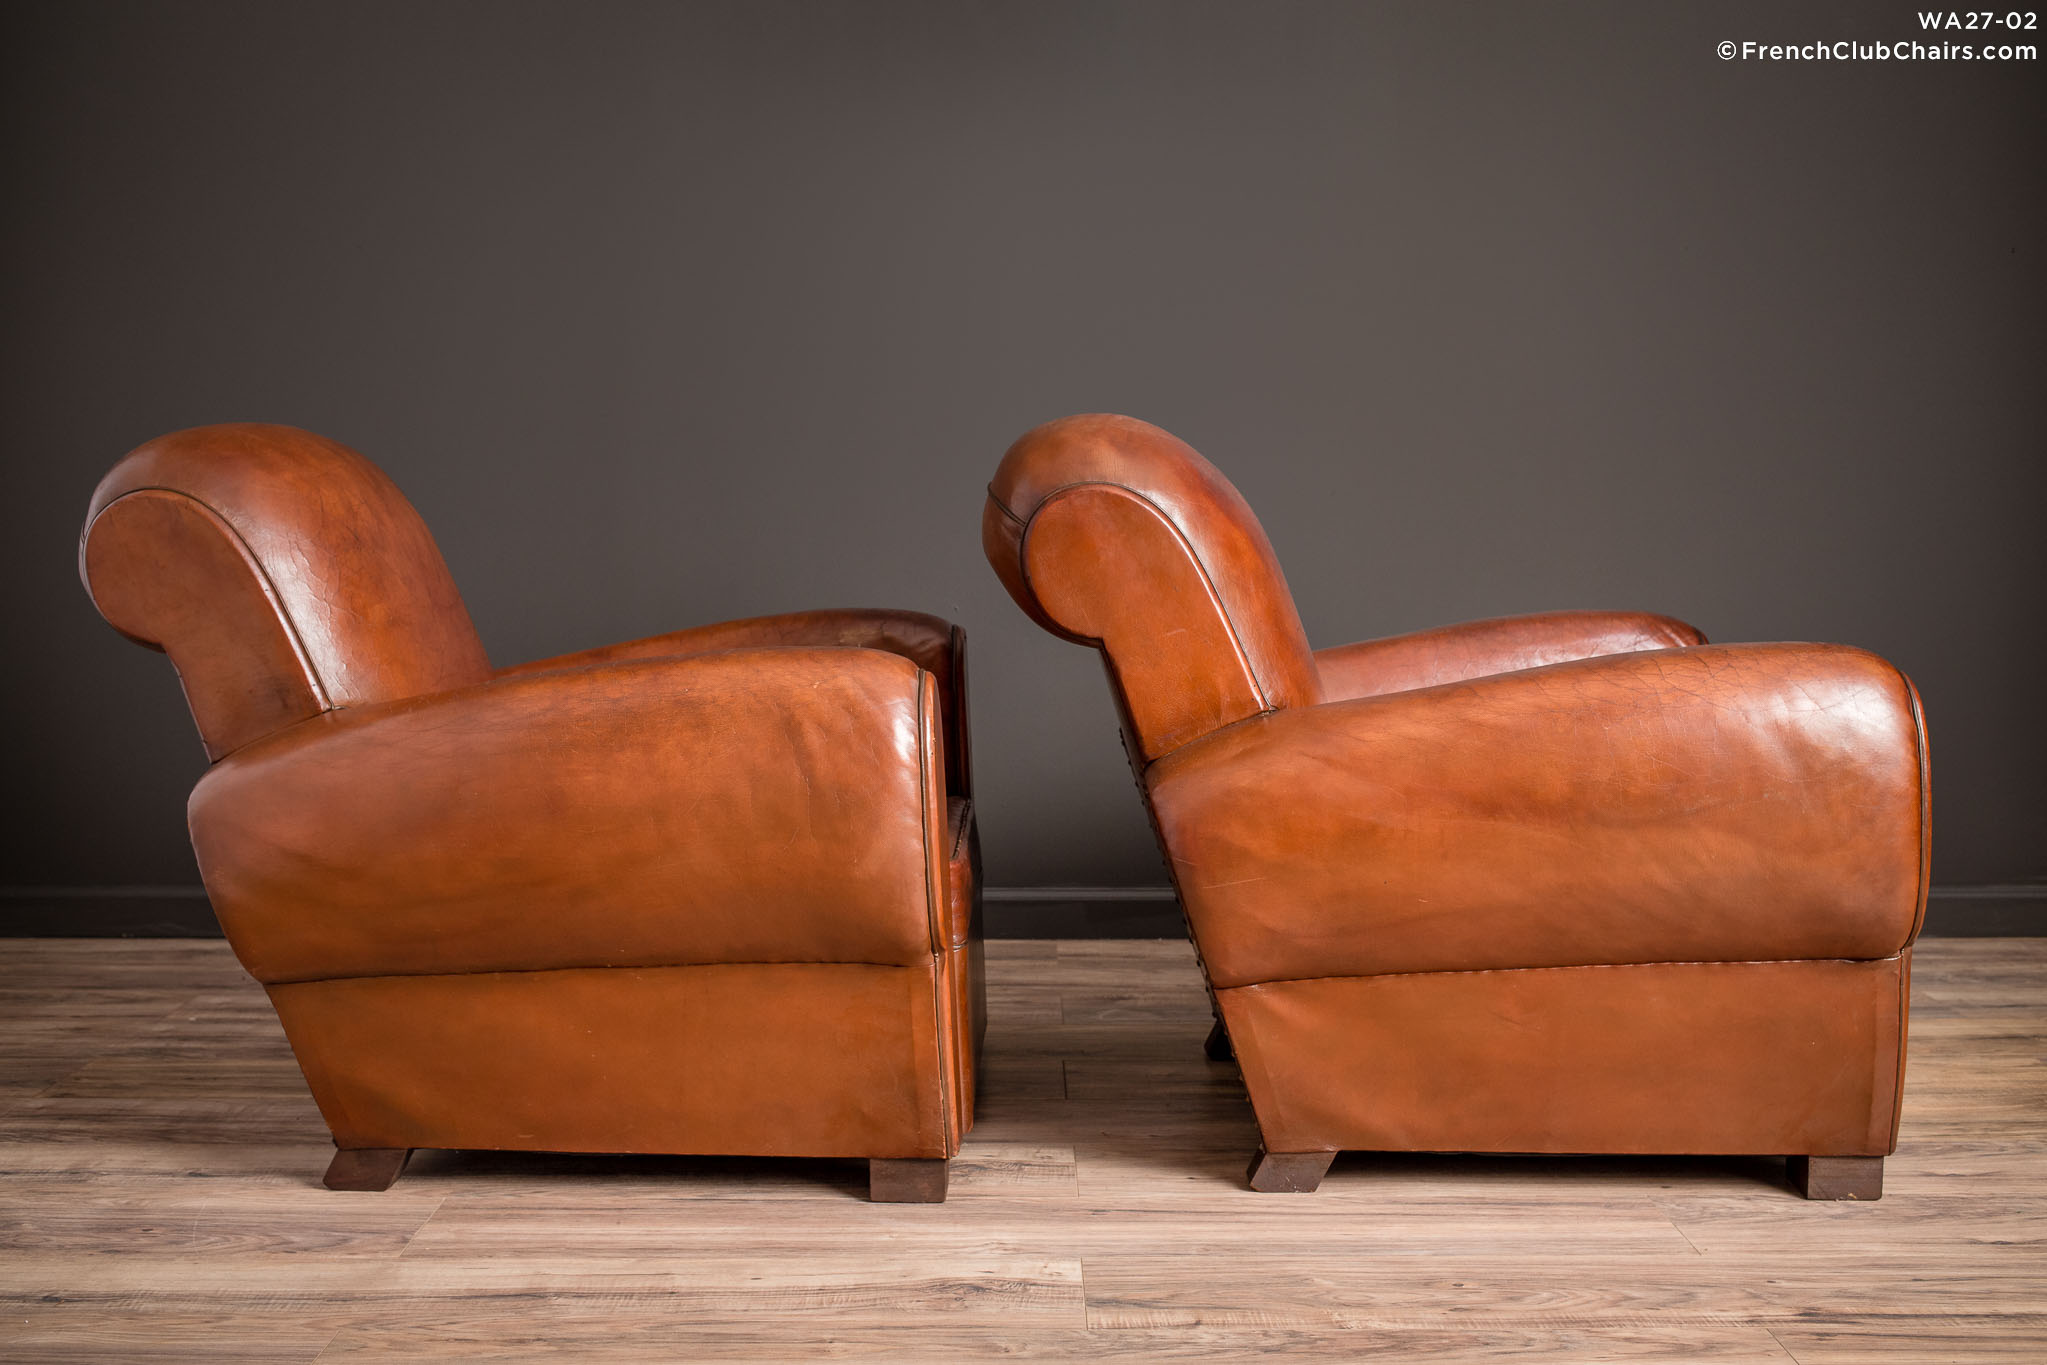 WA_27-02_Classic_Rollback_Cognac_Pair_R_3RT-v01-williams-antiks-leather-french-club-chair-wa_fcccom